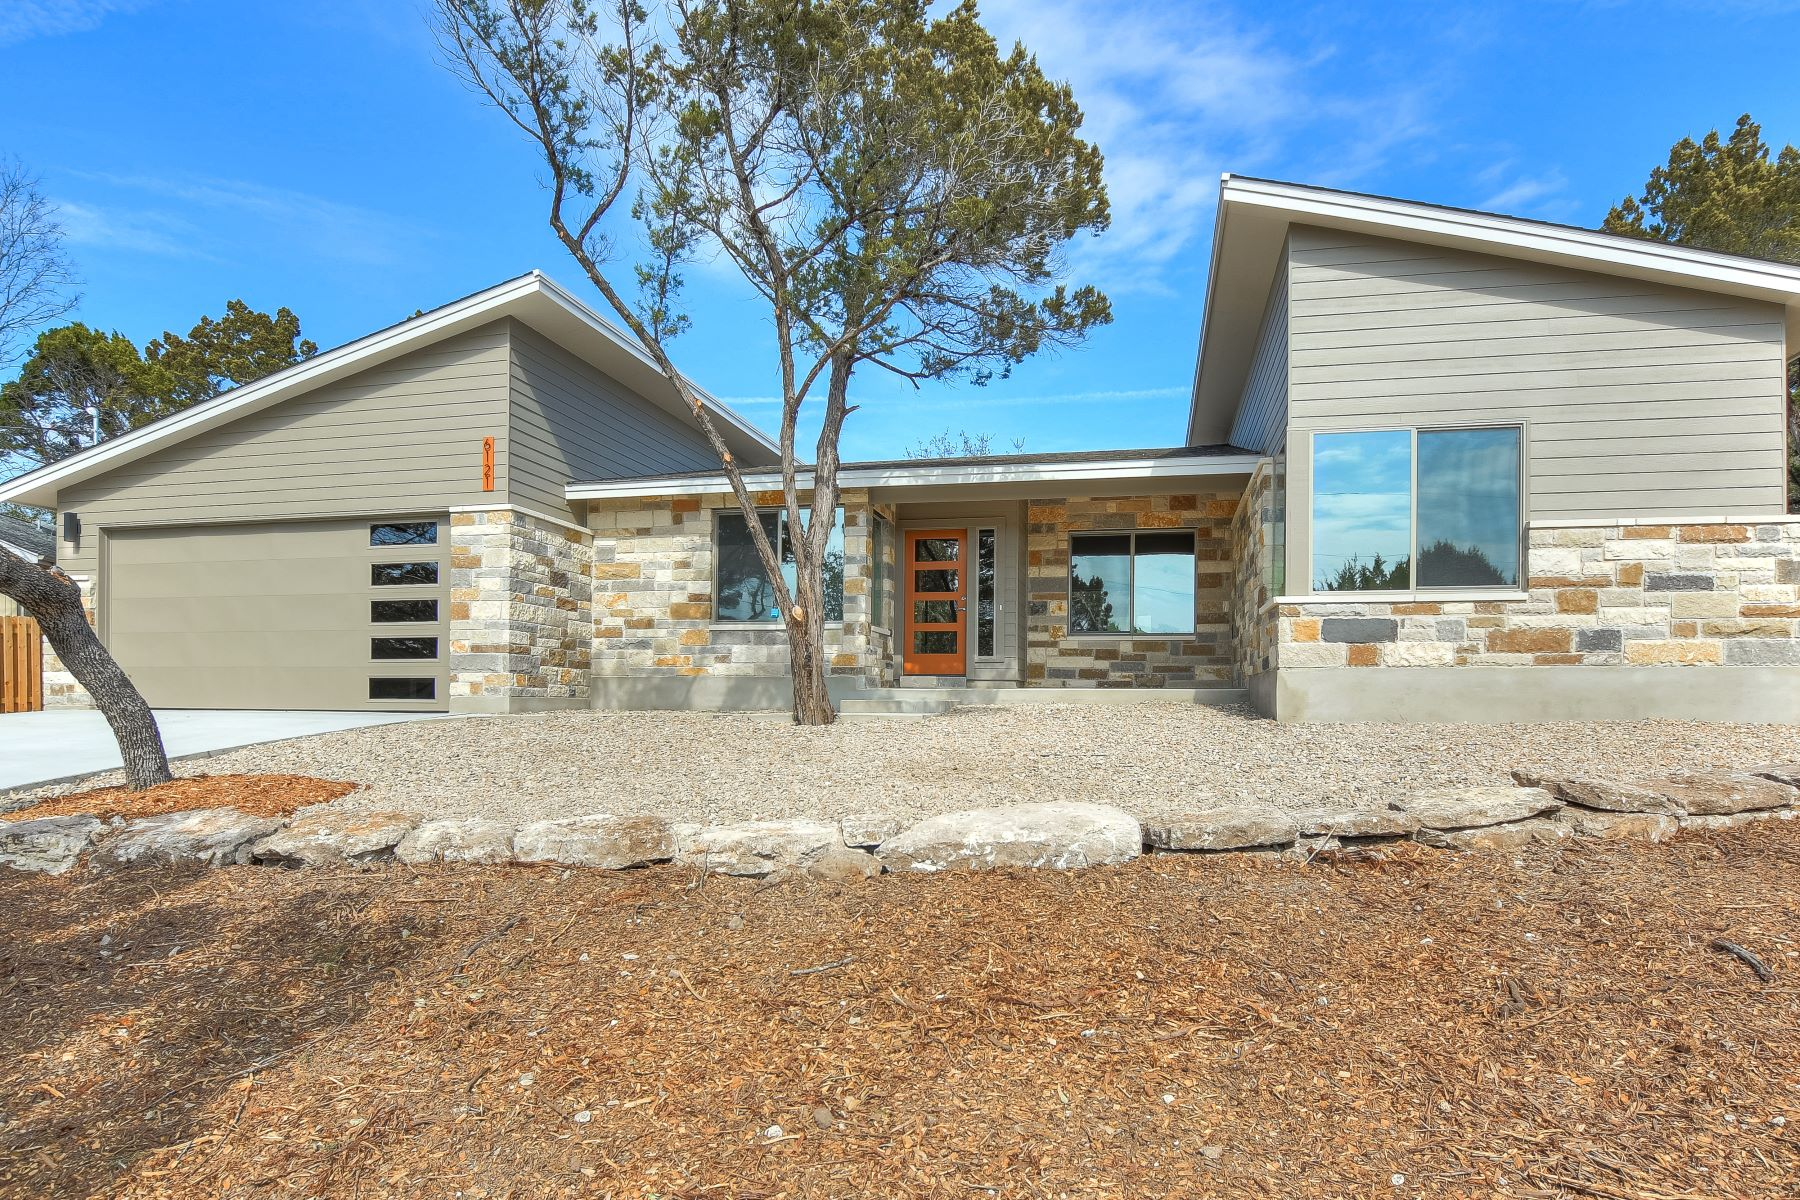 Single Family Home for Sale at Sophisticated Mid-Century Modern 6121 Cimmaron Trail, Lago Vista, Texas, 78645 United States